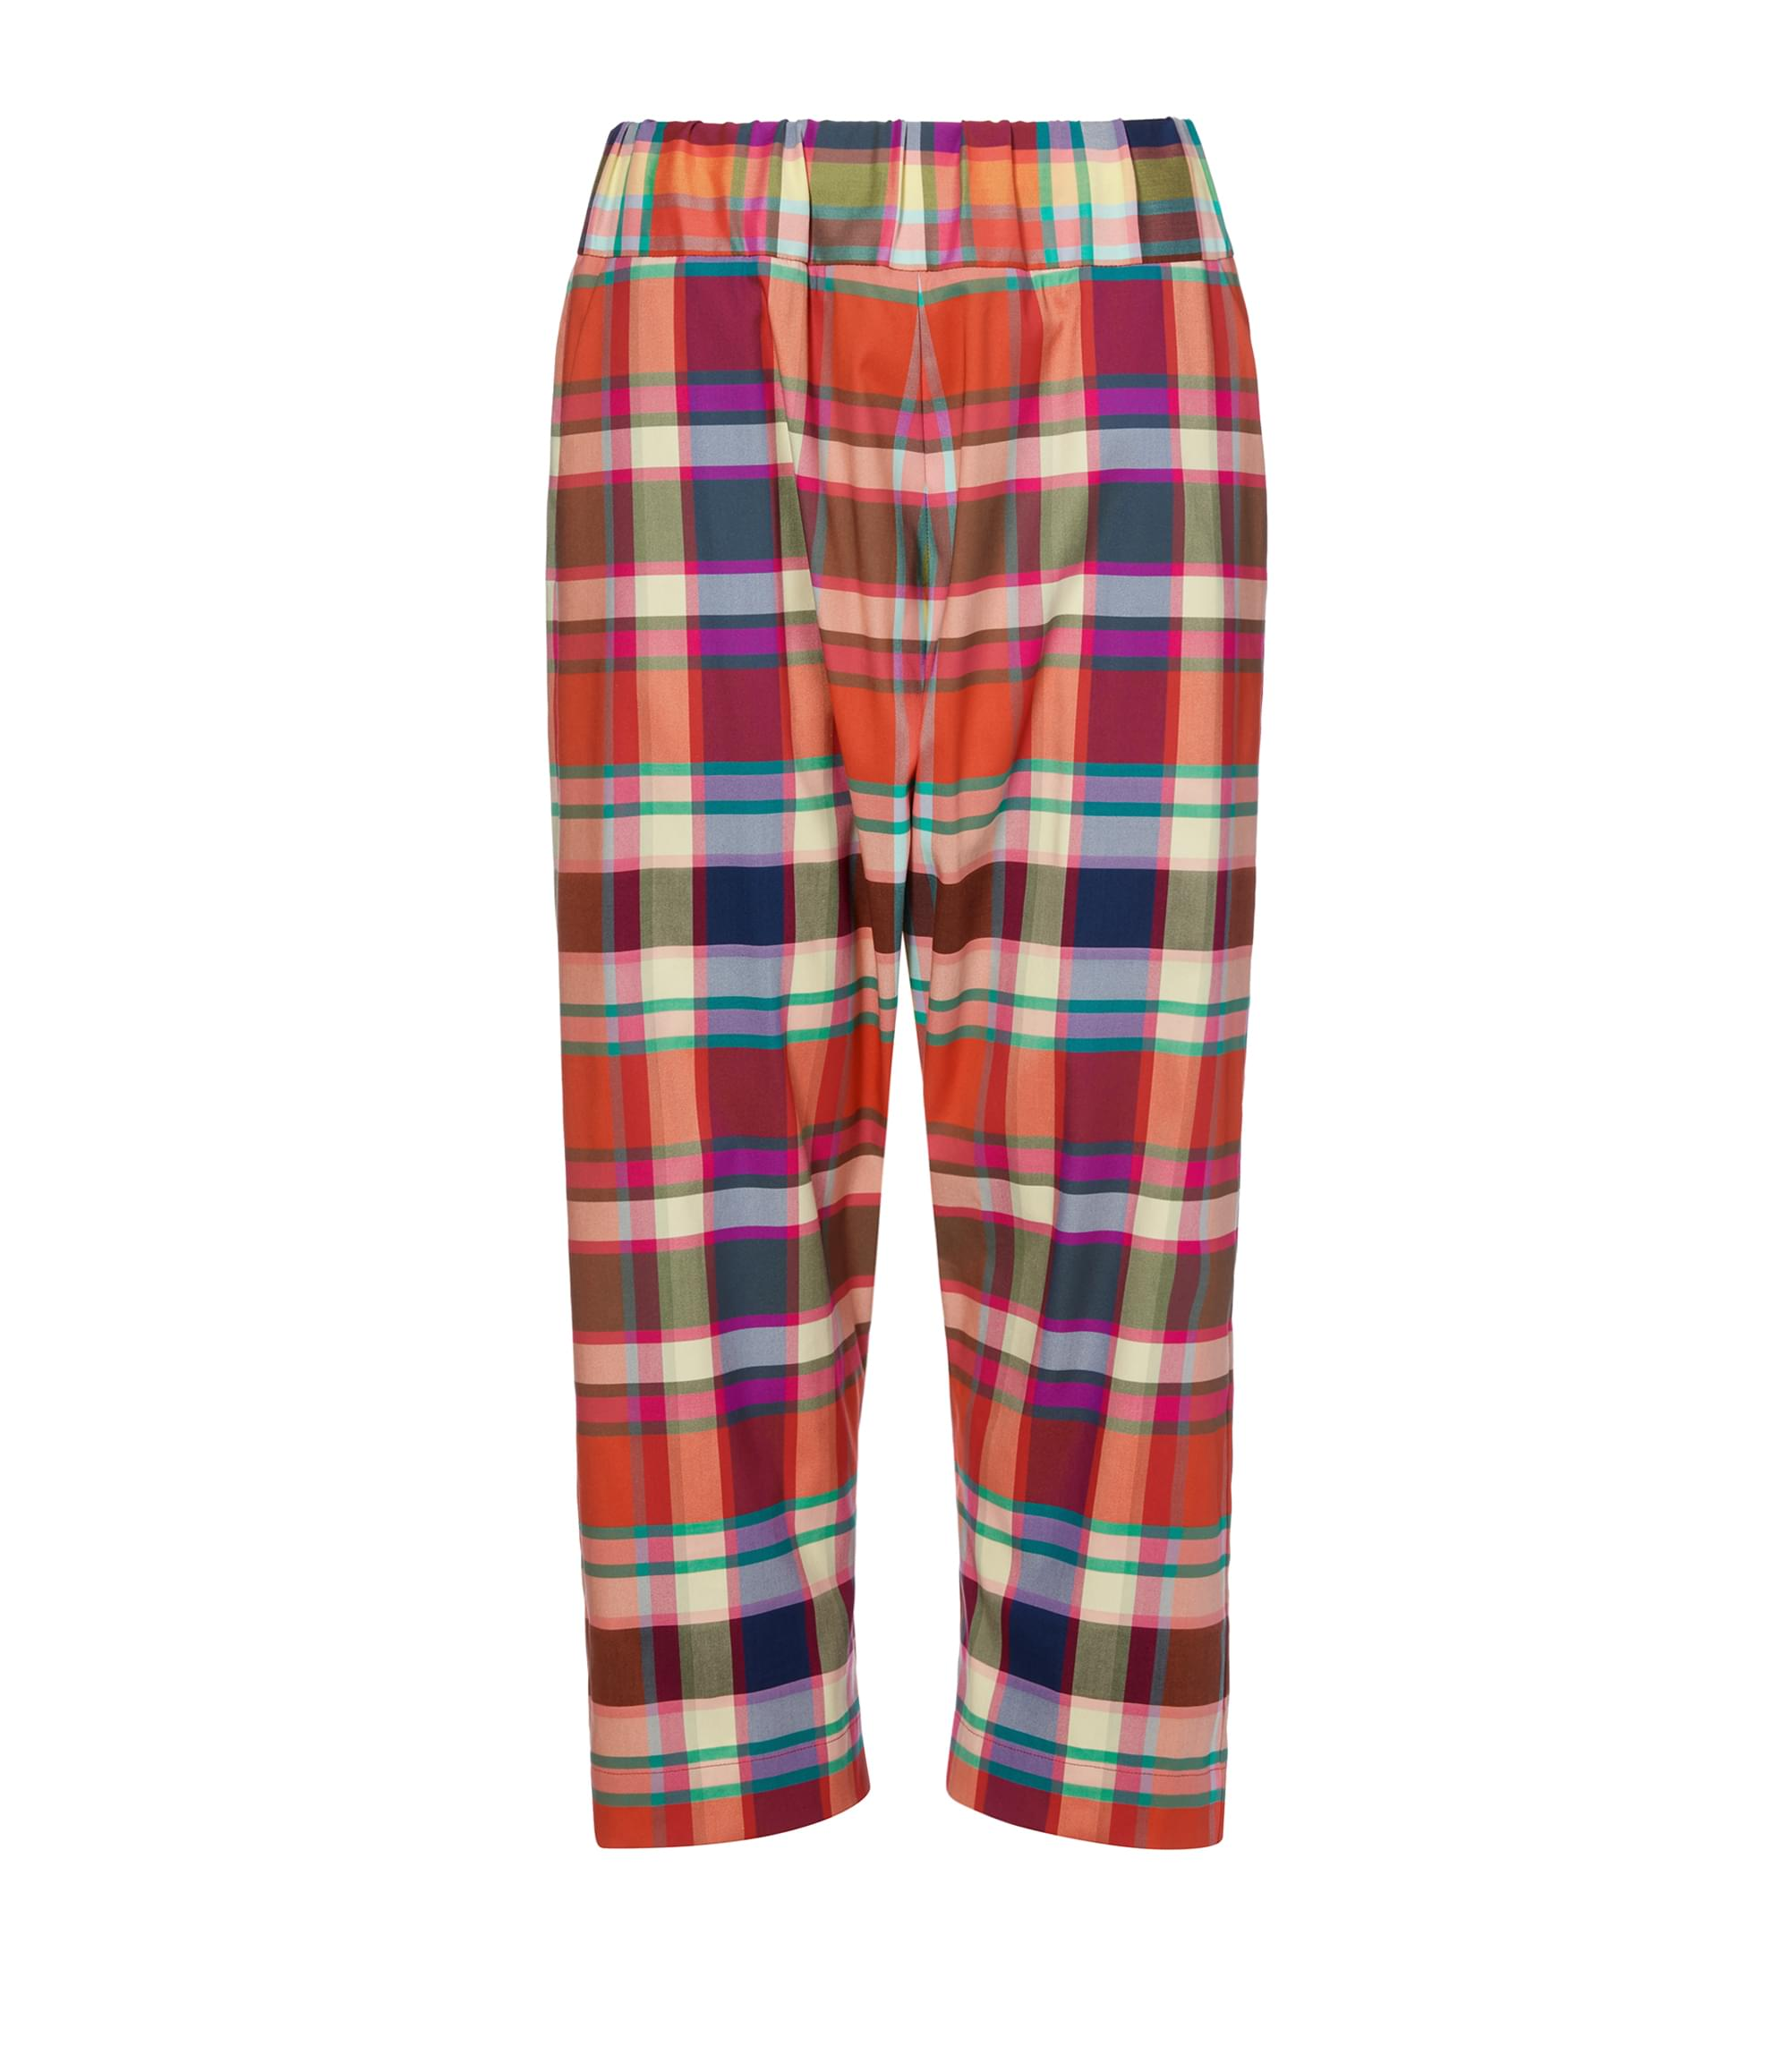 Vivienne Westwood Harlequin O Trousers